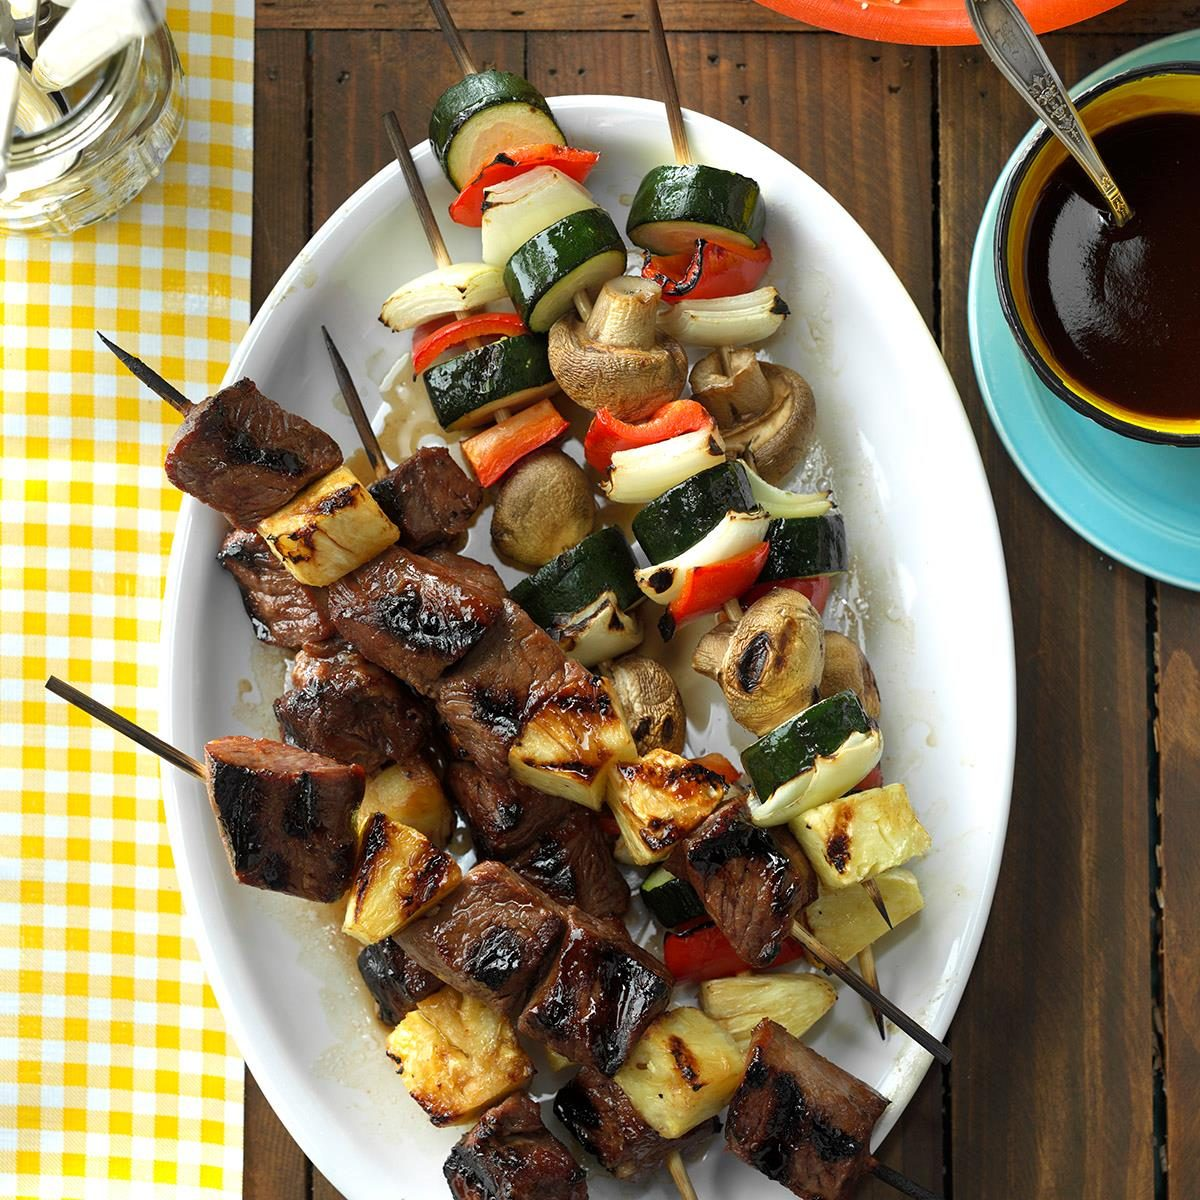 Monday: Teriyaki Shish Kabobs